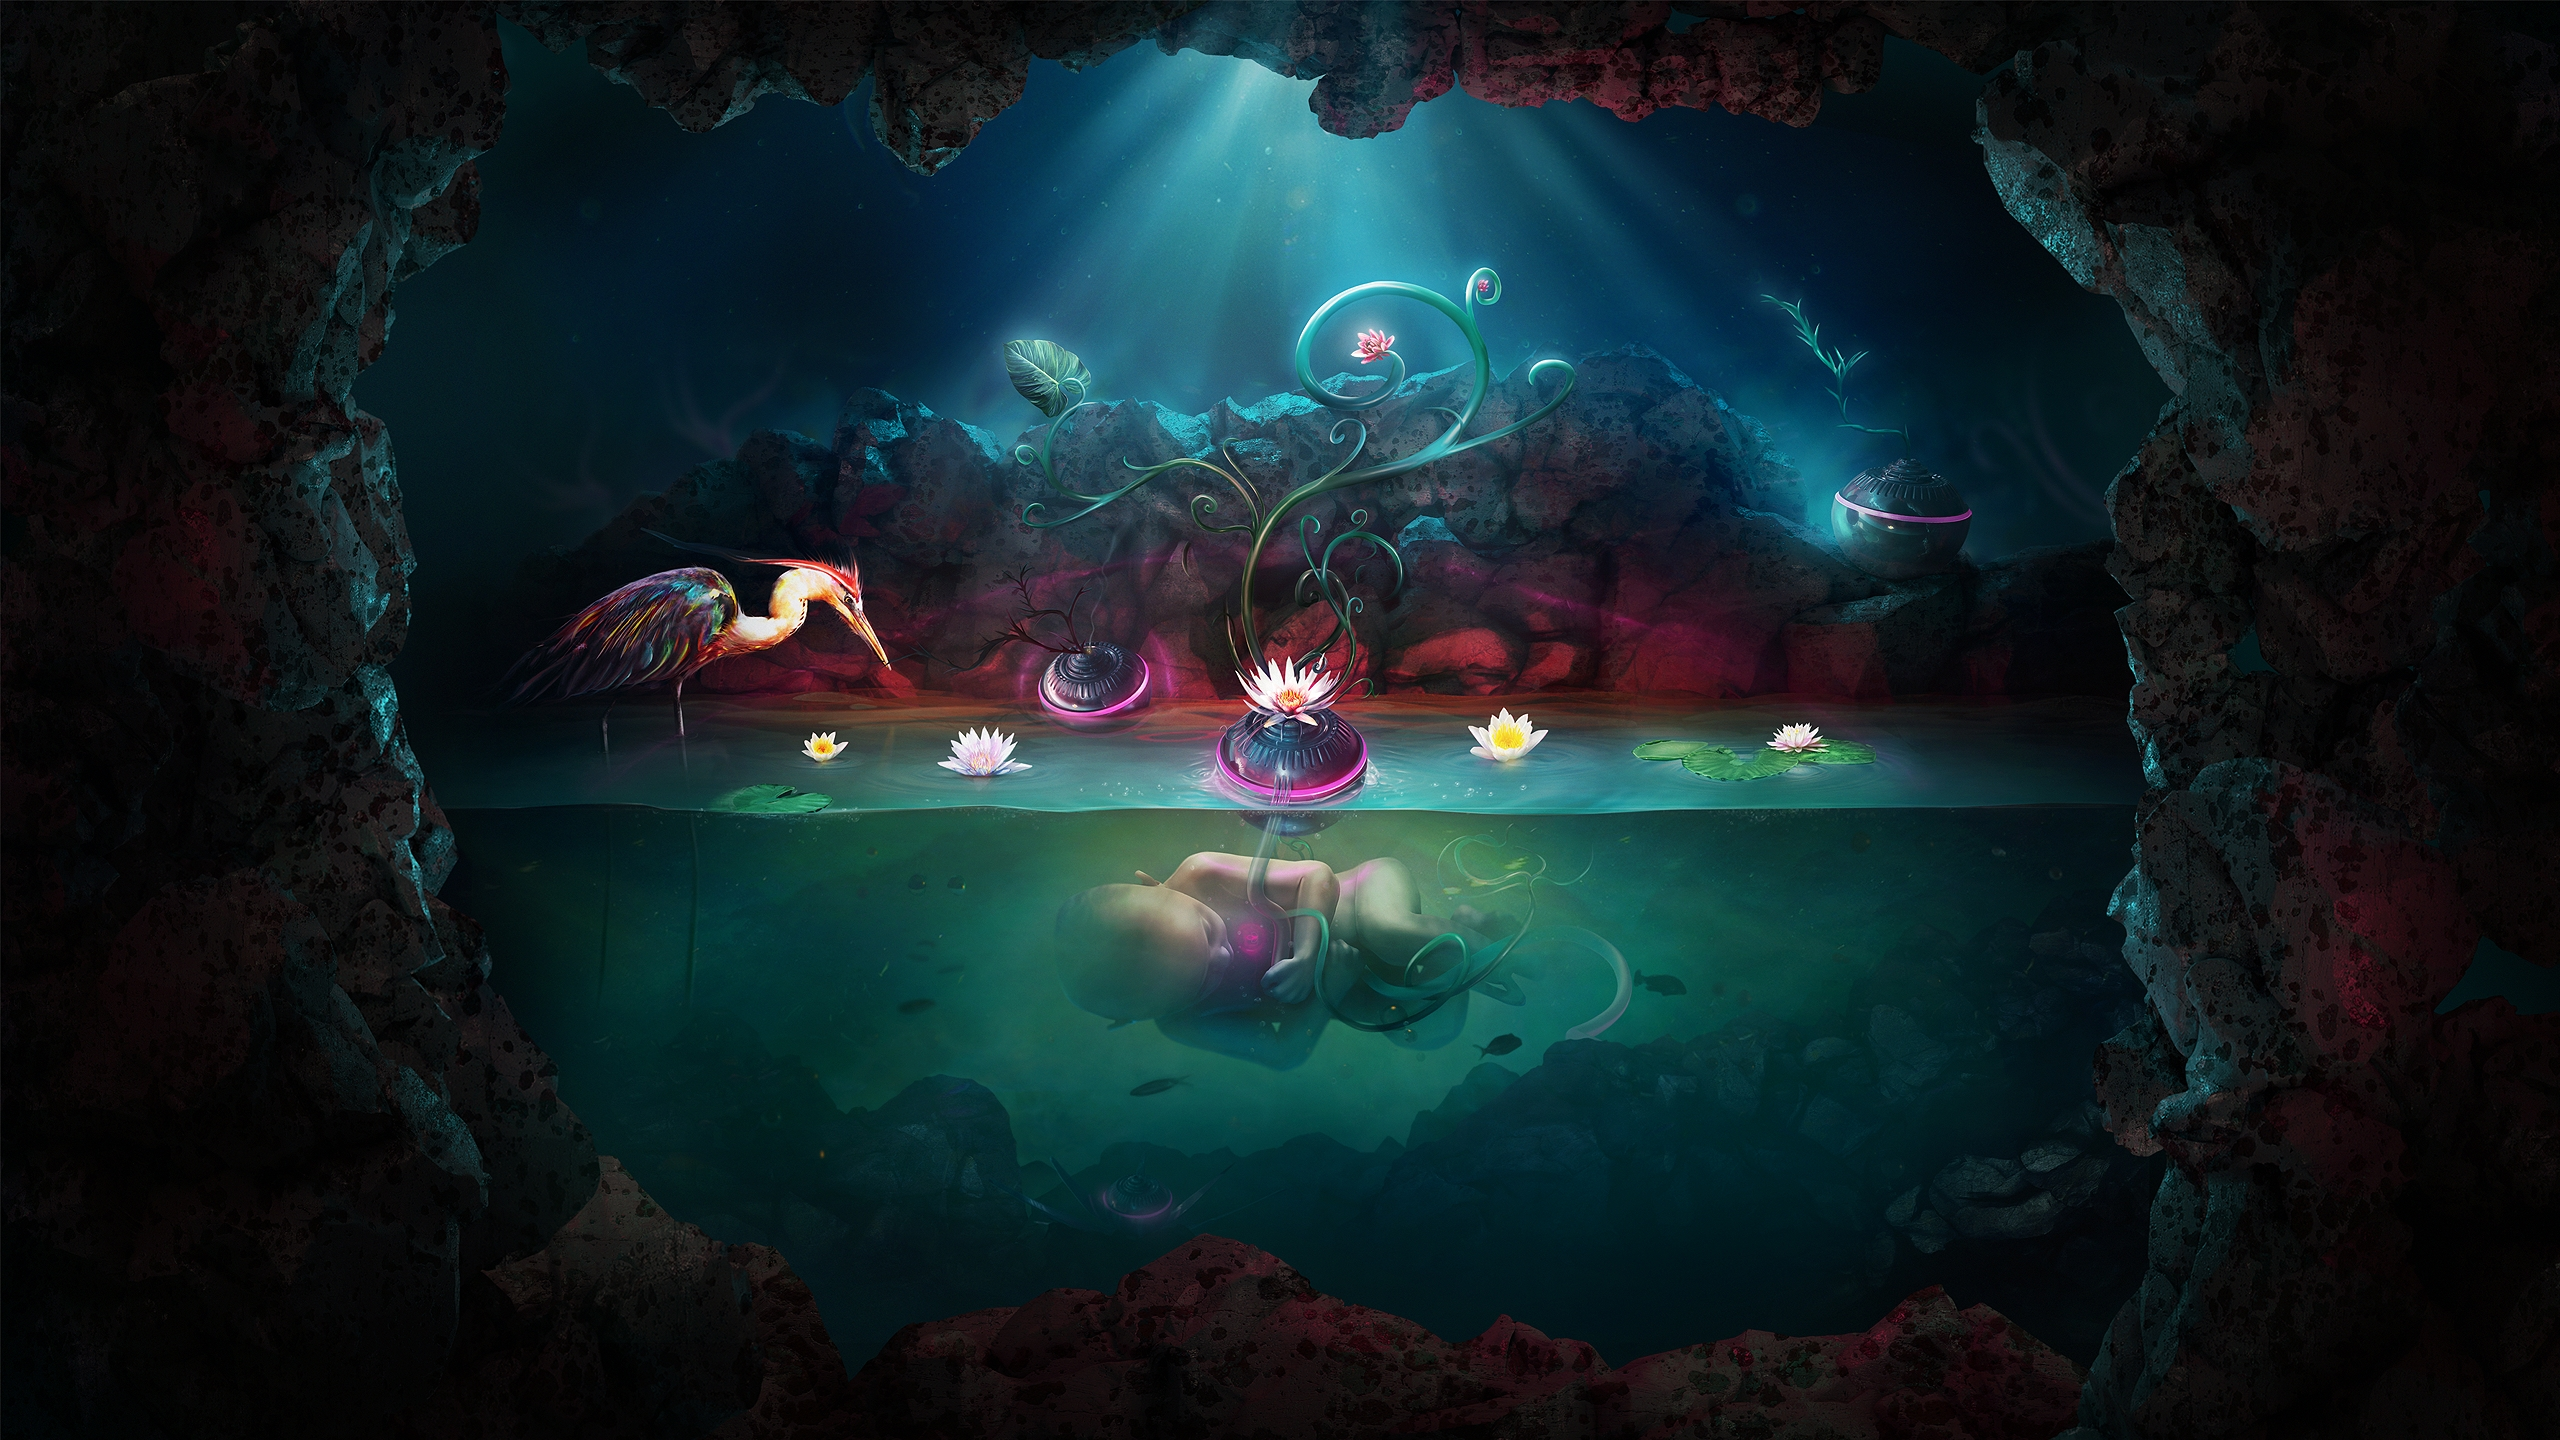 547 Psychedelic HD Wallpapers